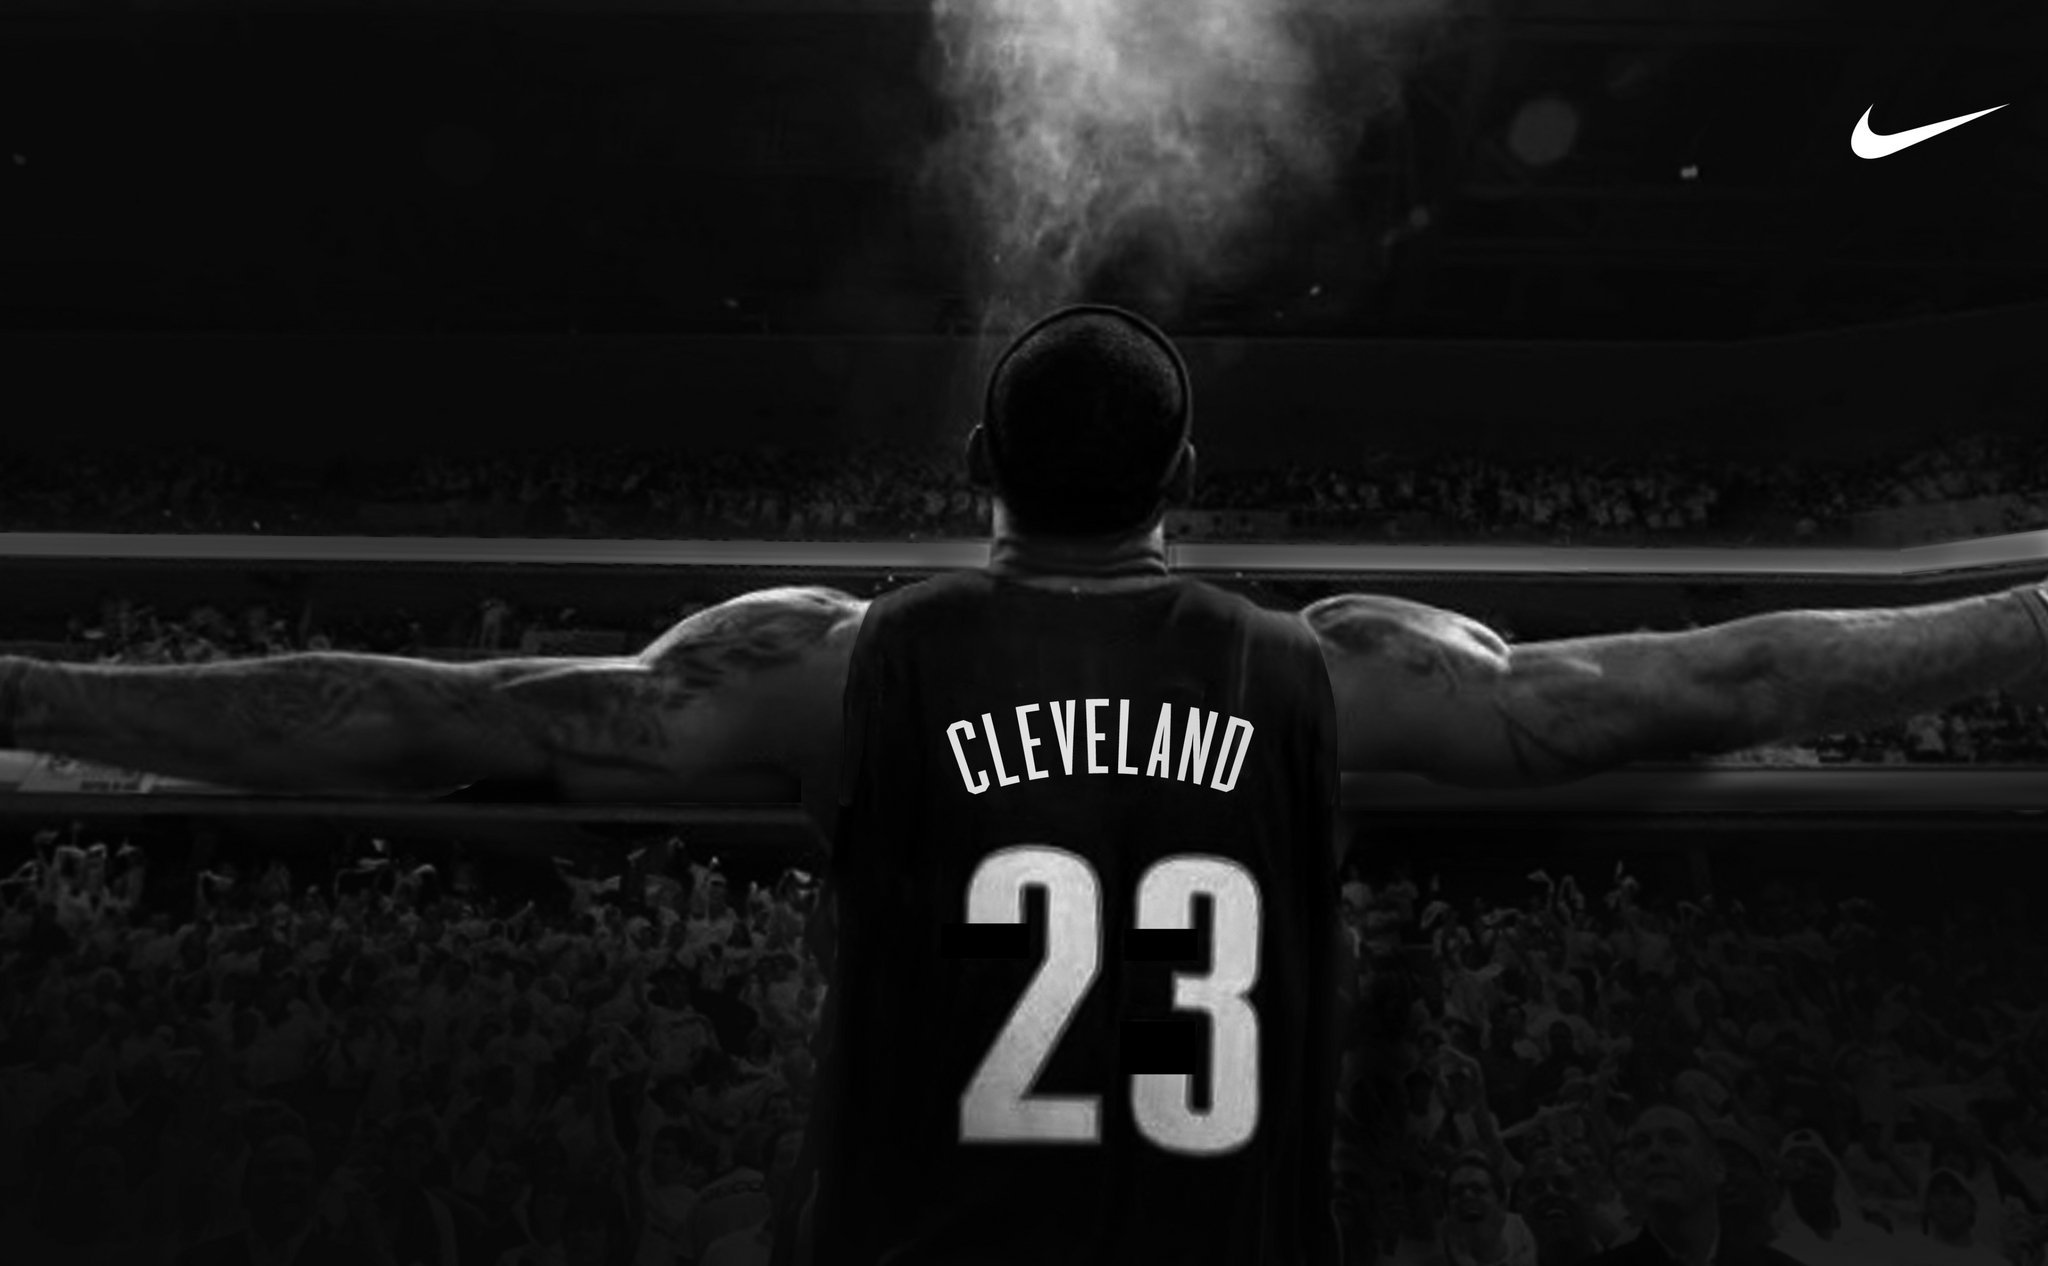 The new LeBron James banner is set to go up across form the Q USATSI 2048x1266